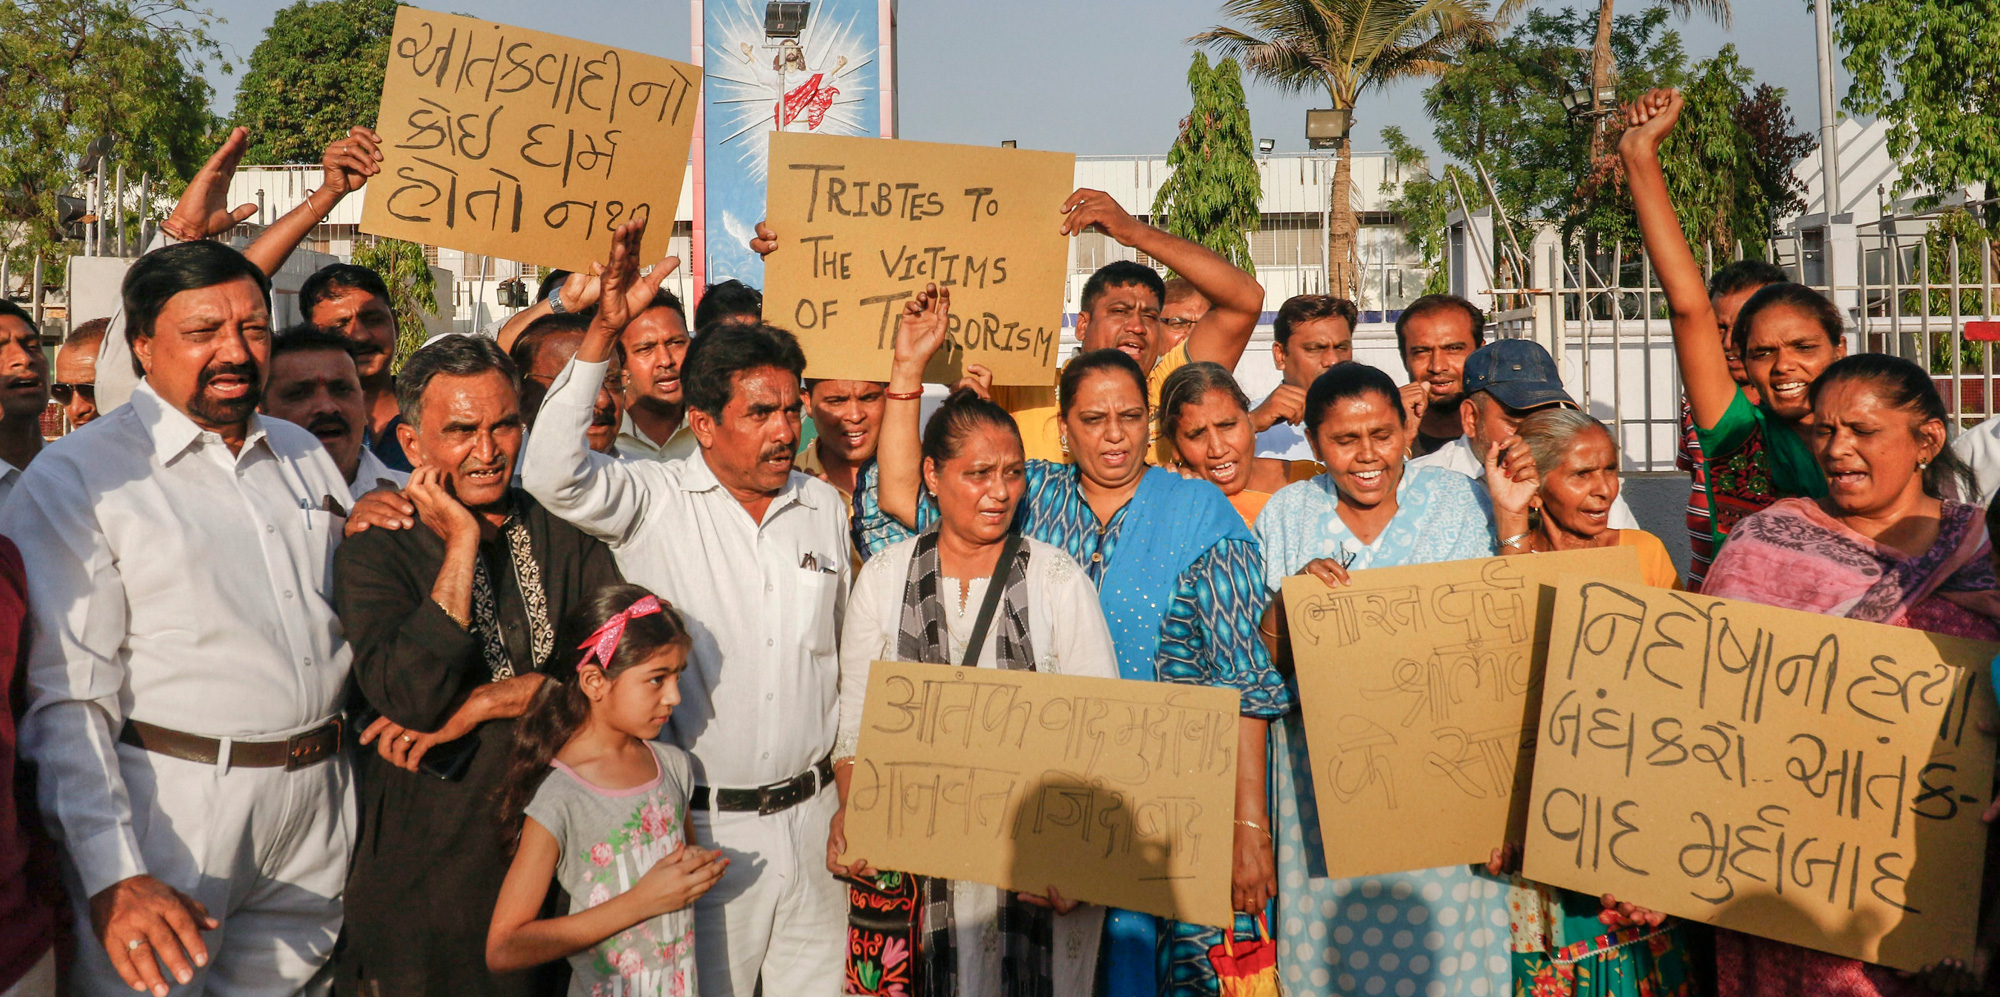 Members of Christian community hold placard to condem the bomb blasts in Sri Lanka outside the Methodist church, in Ahmedabad on Sunday, April 21, 2019.